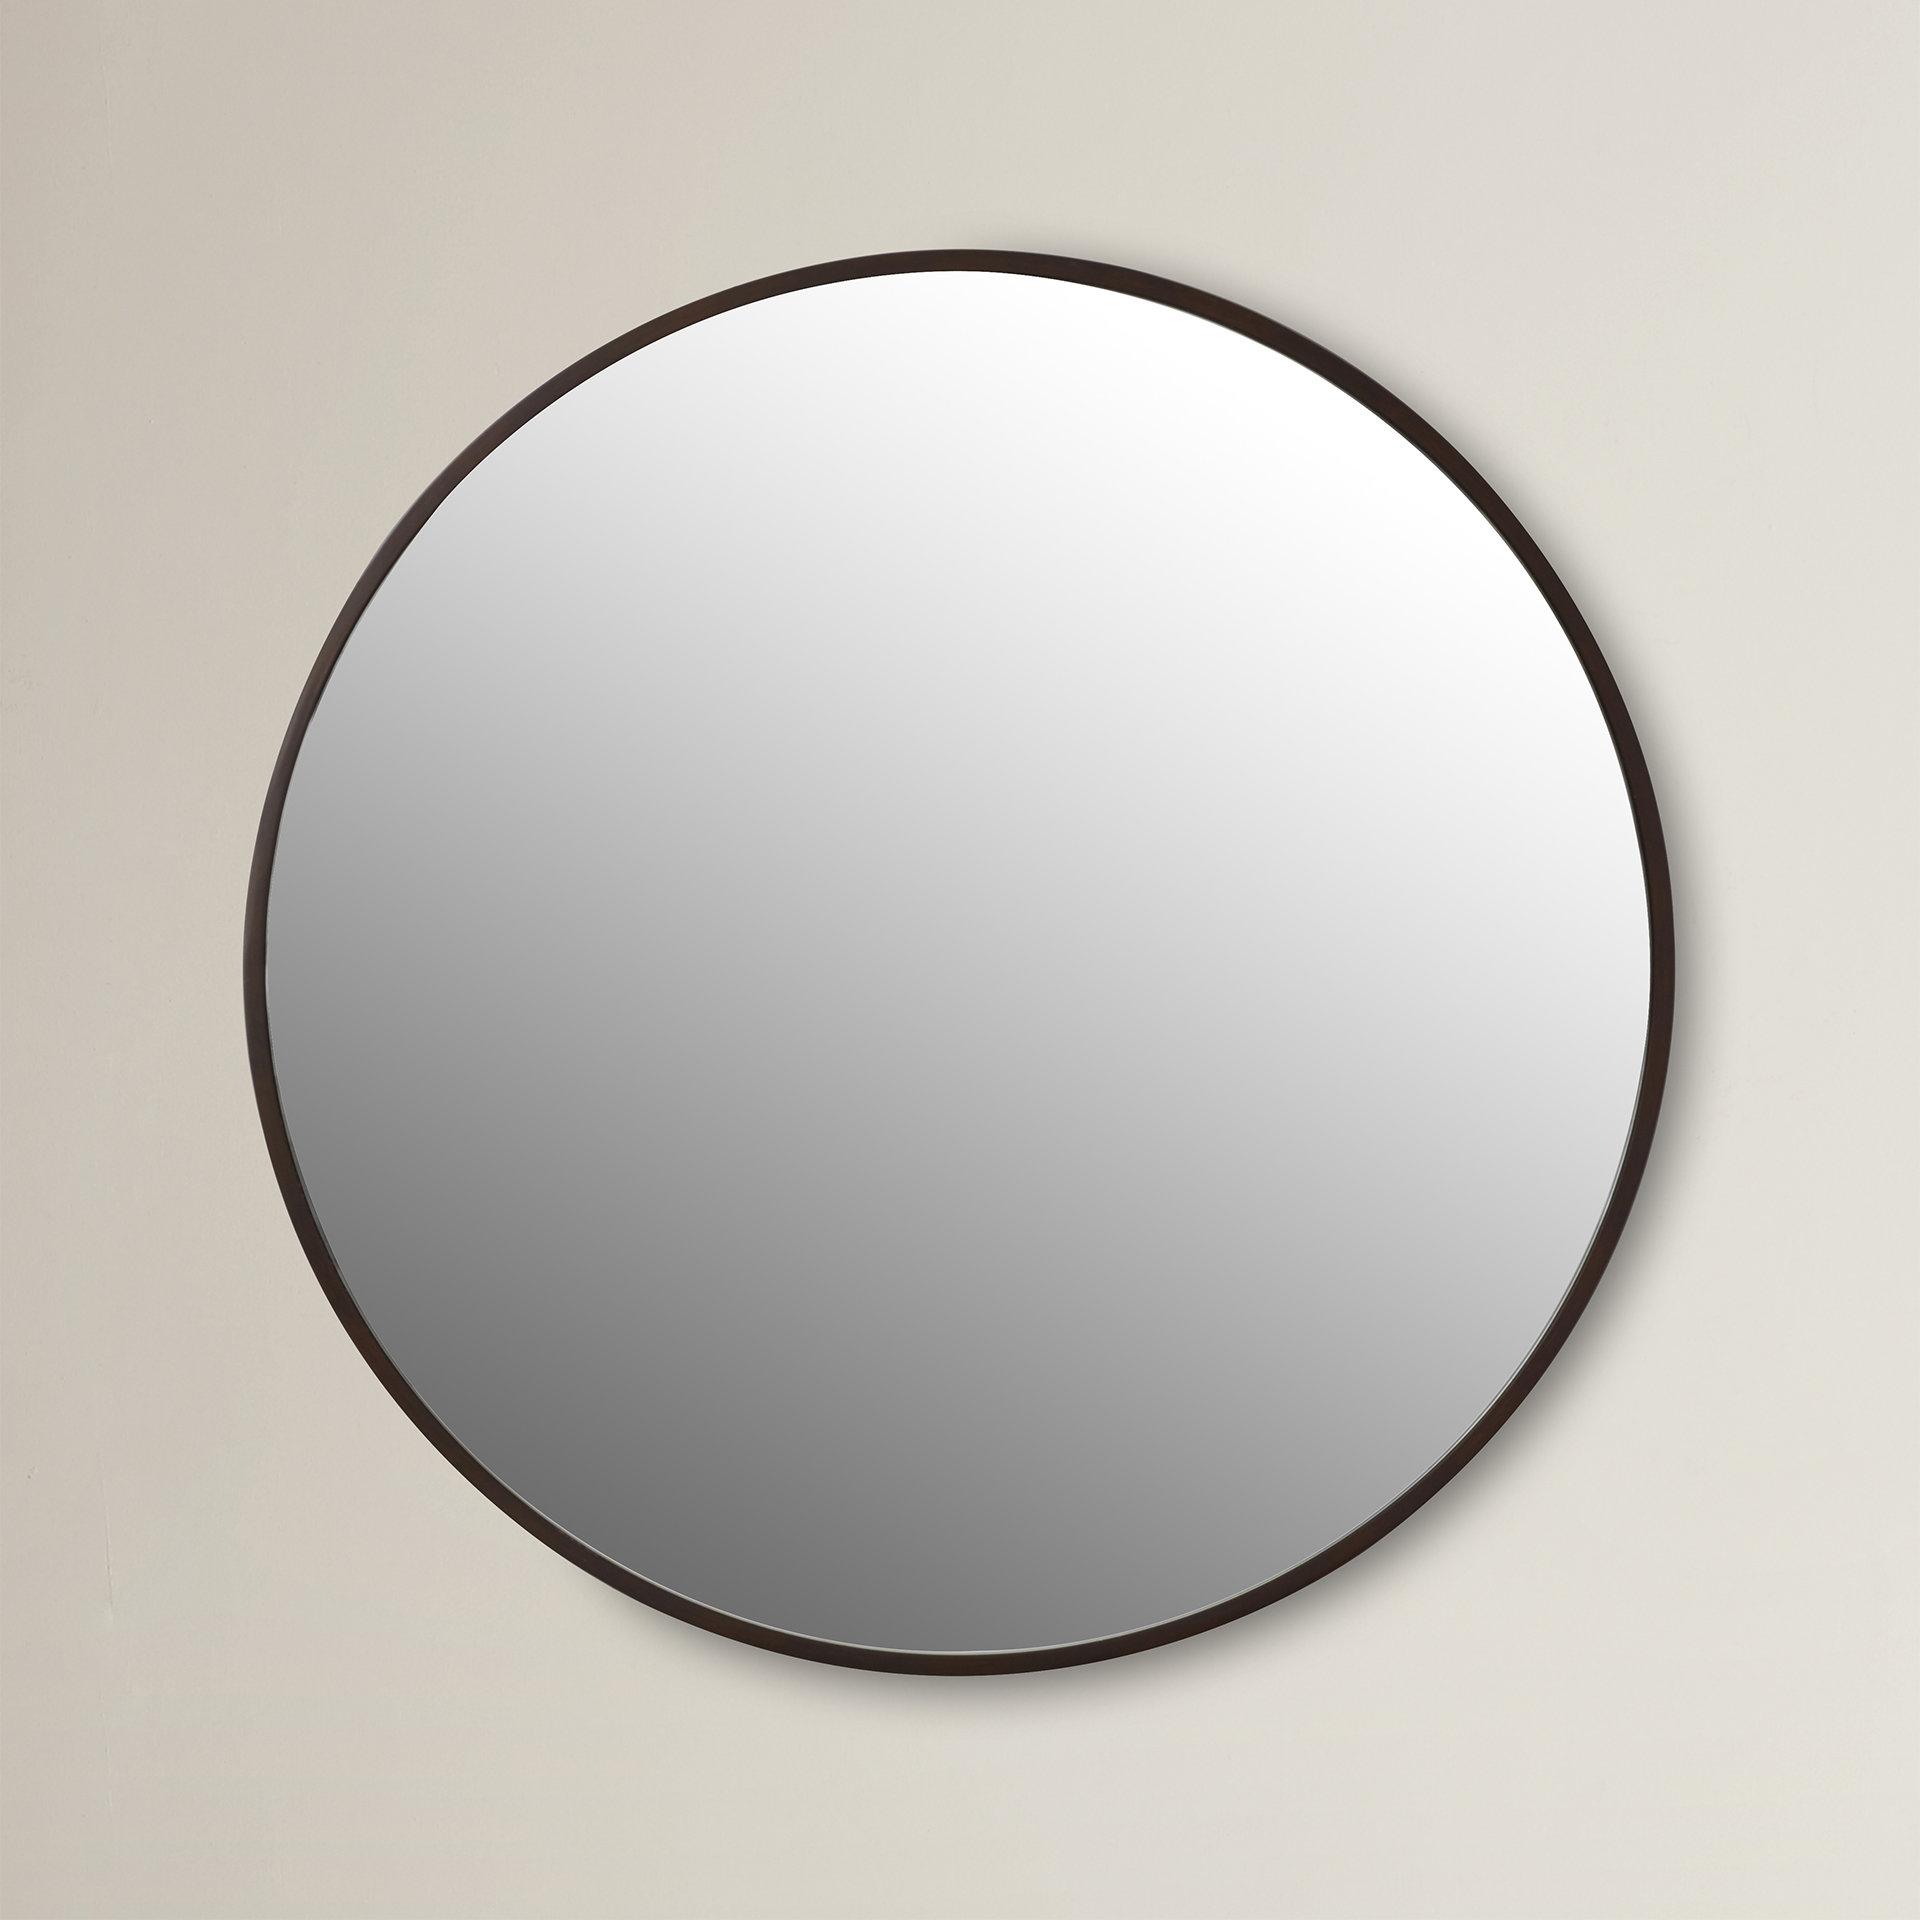 Levan Modern & Contemporary Accent Mirror intended for Colton Modern & Contemporary Wall Mirrors (Image 21 of 30)